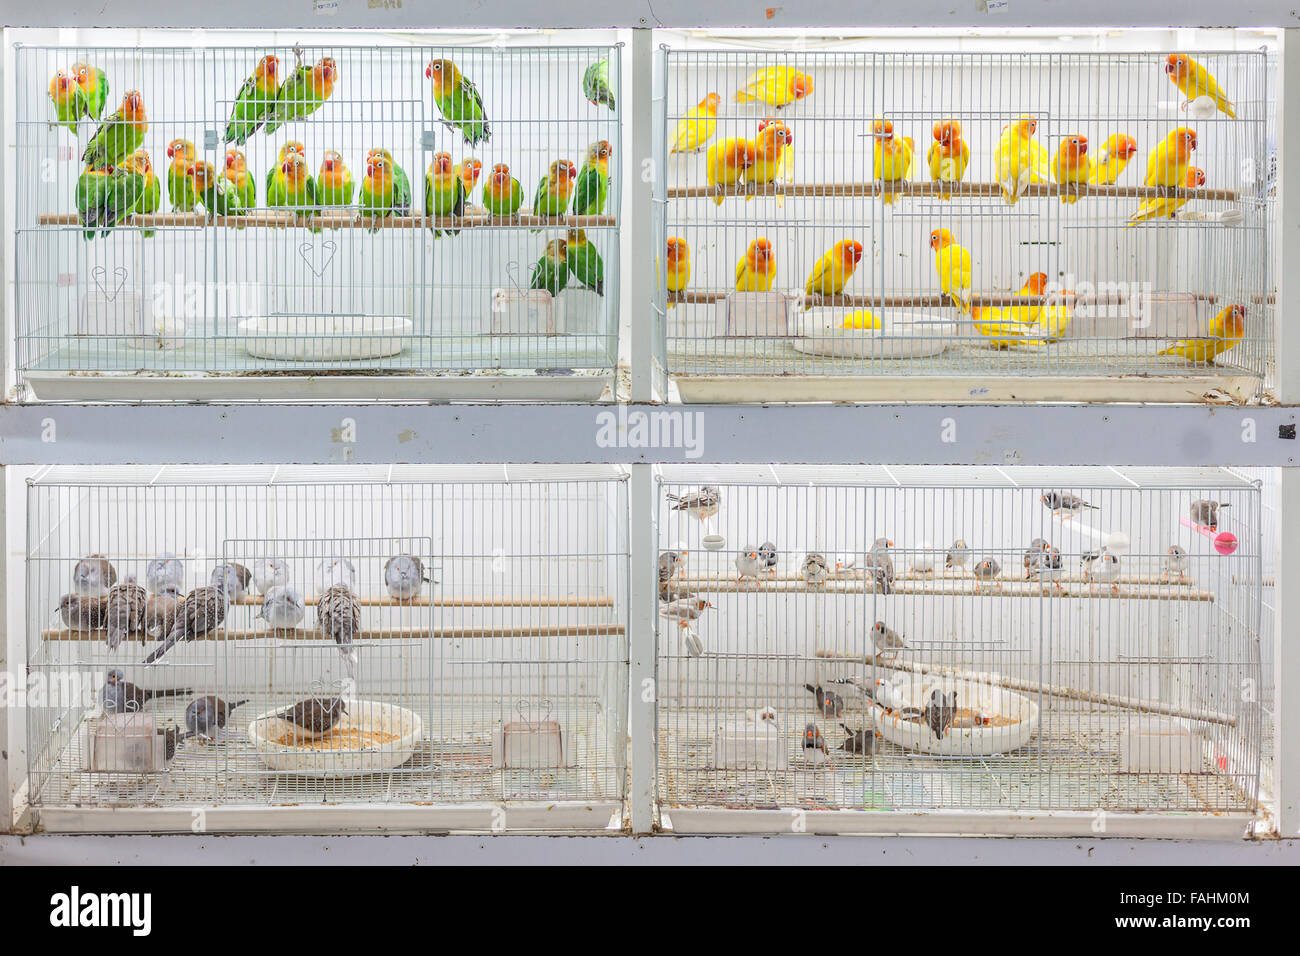 Birds for sale at Souq Waqif, Doha - Stock Image